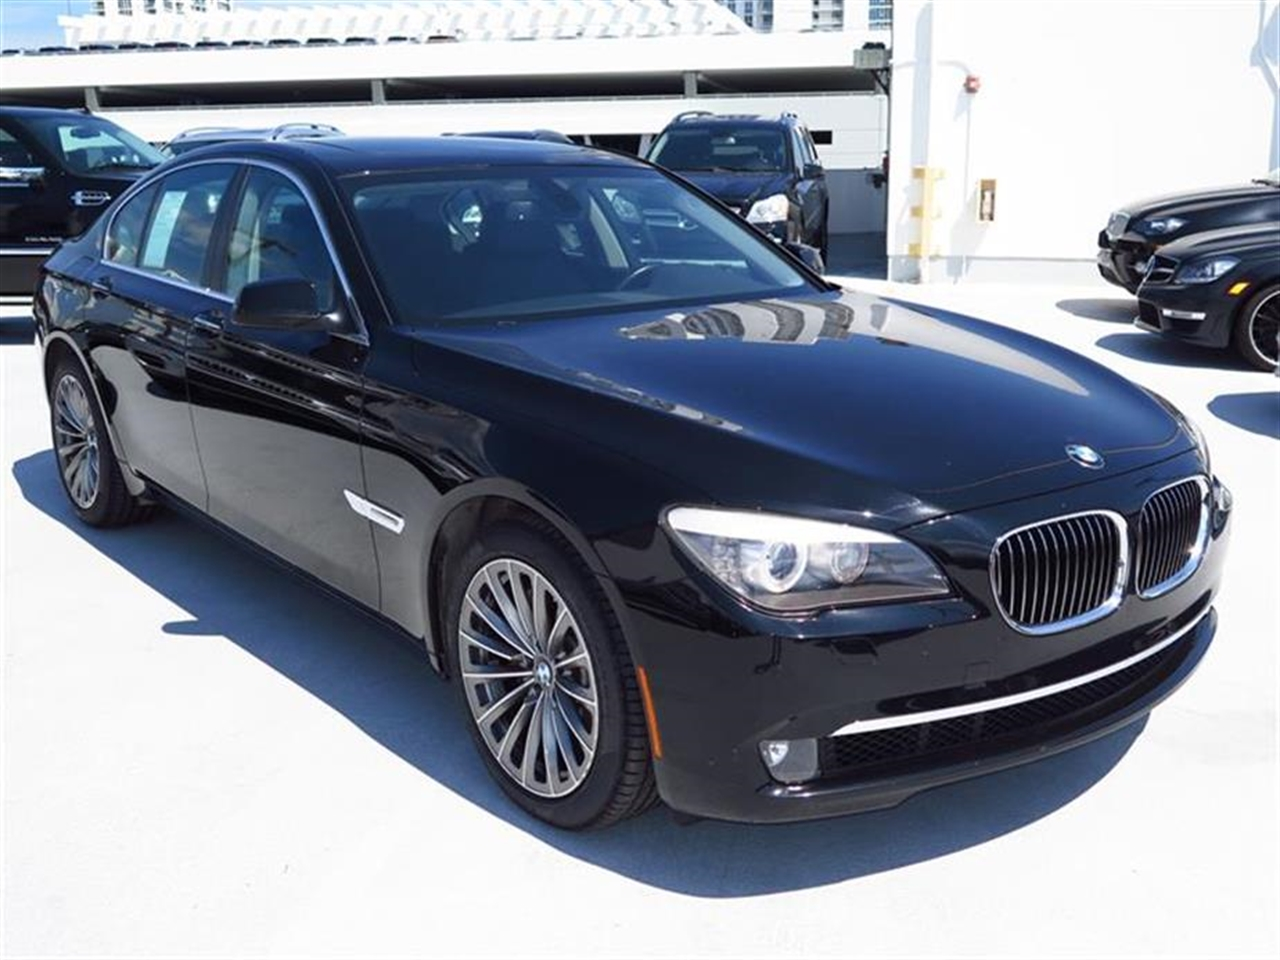 2012 BMW 7 SERIES 4dr Sdn 740i RWD 43218 miles 4-zone automatic climate control -inc draft-free